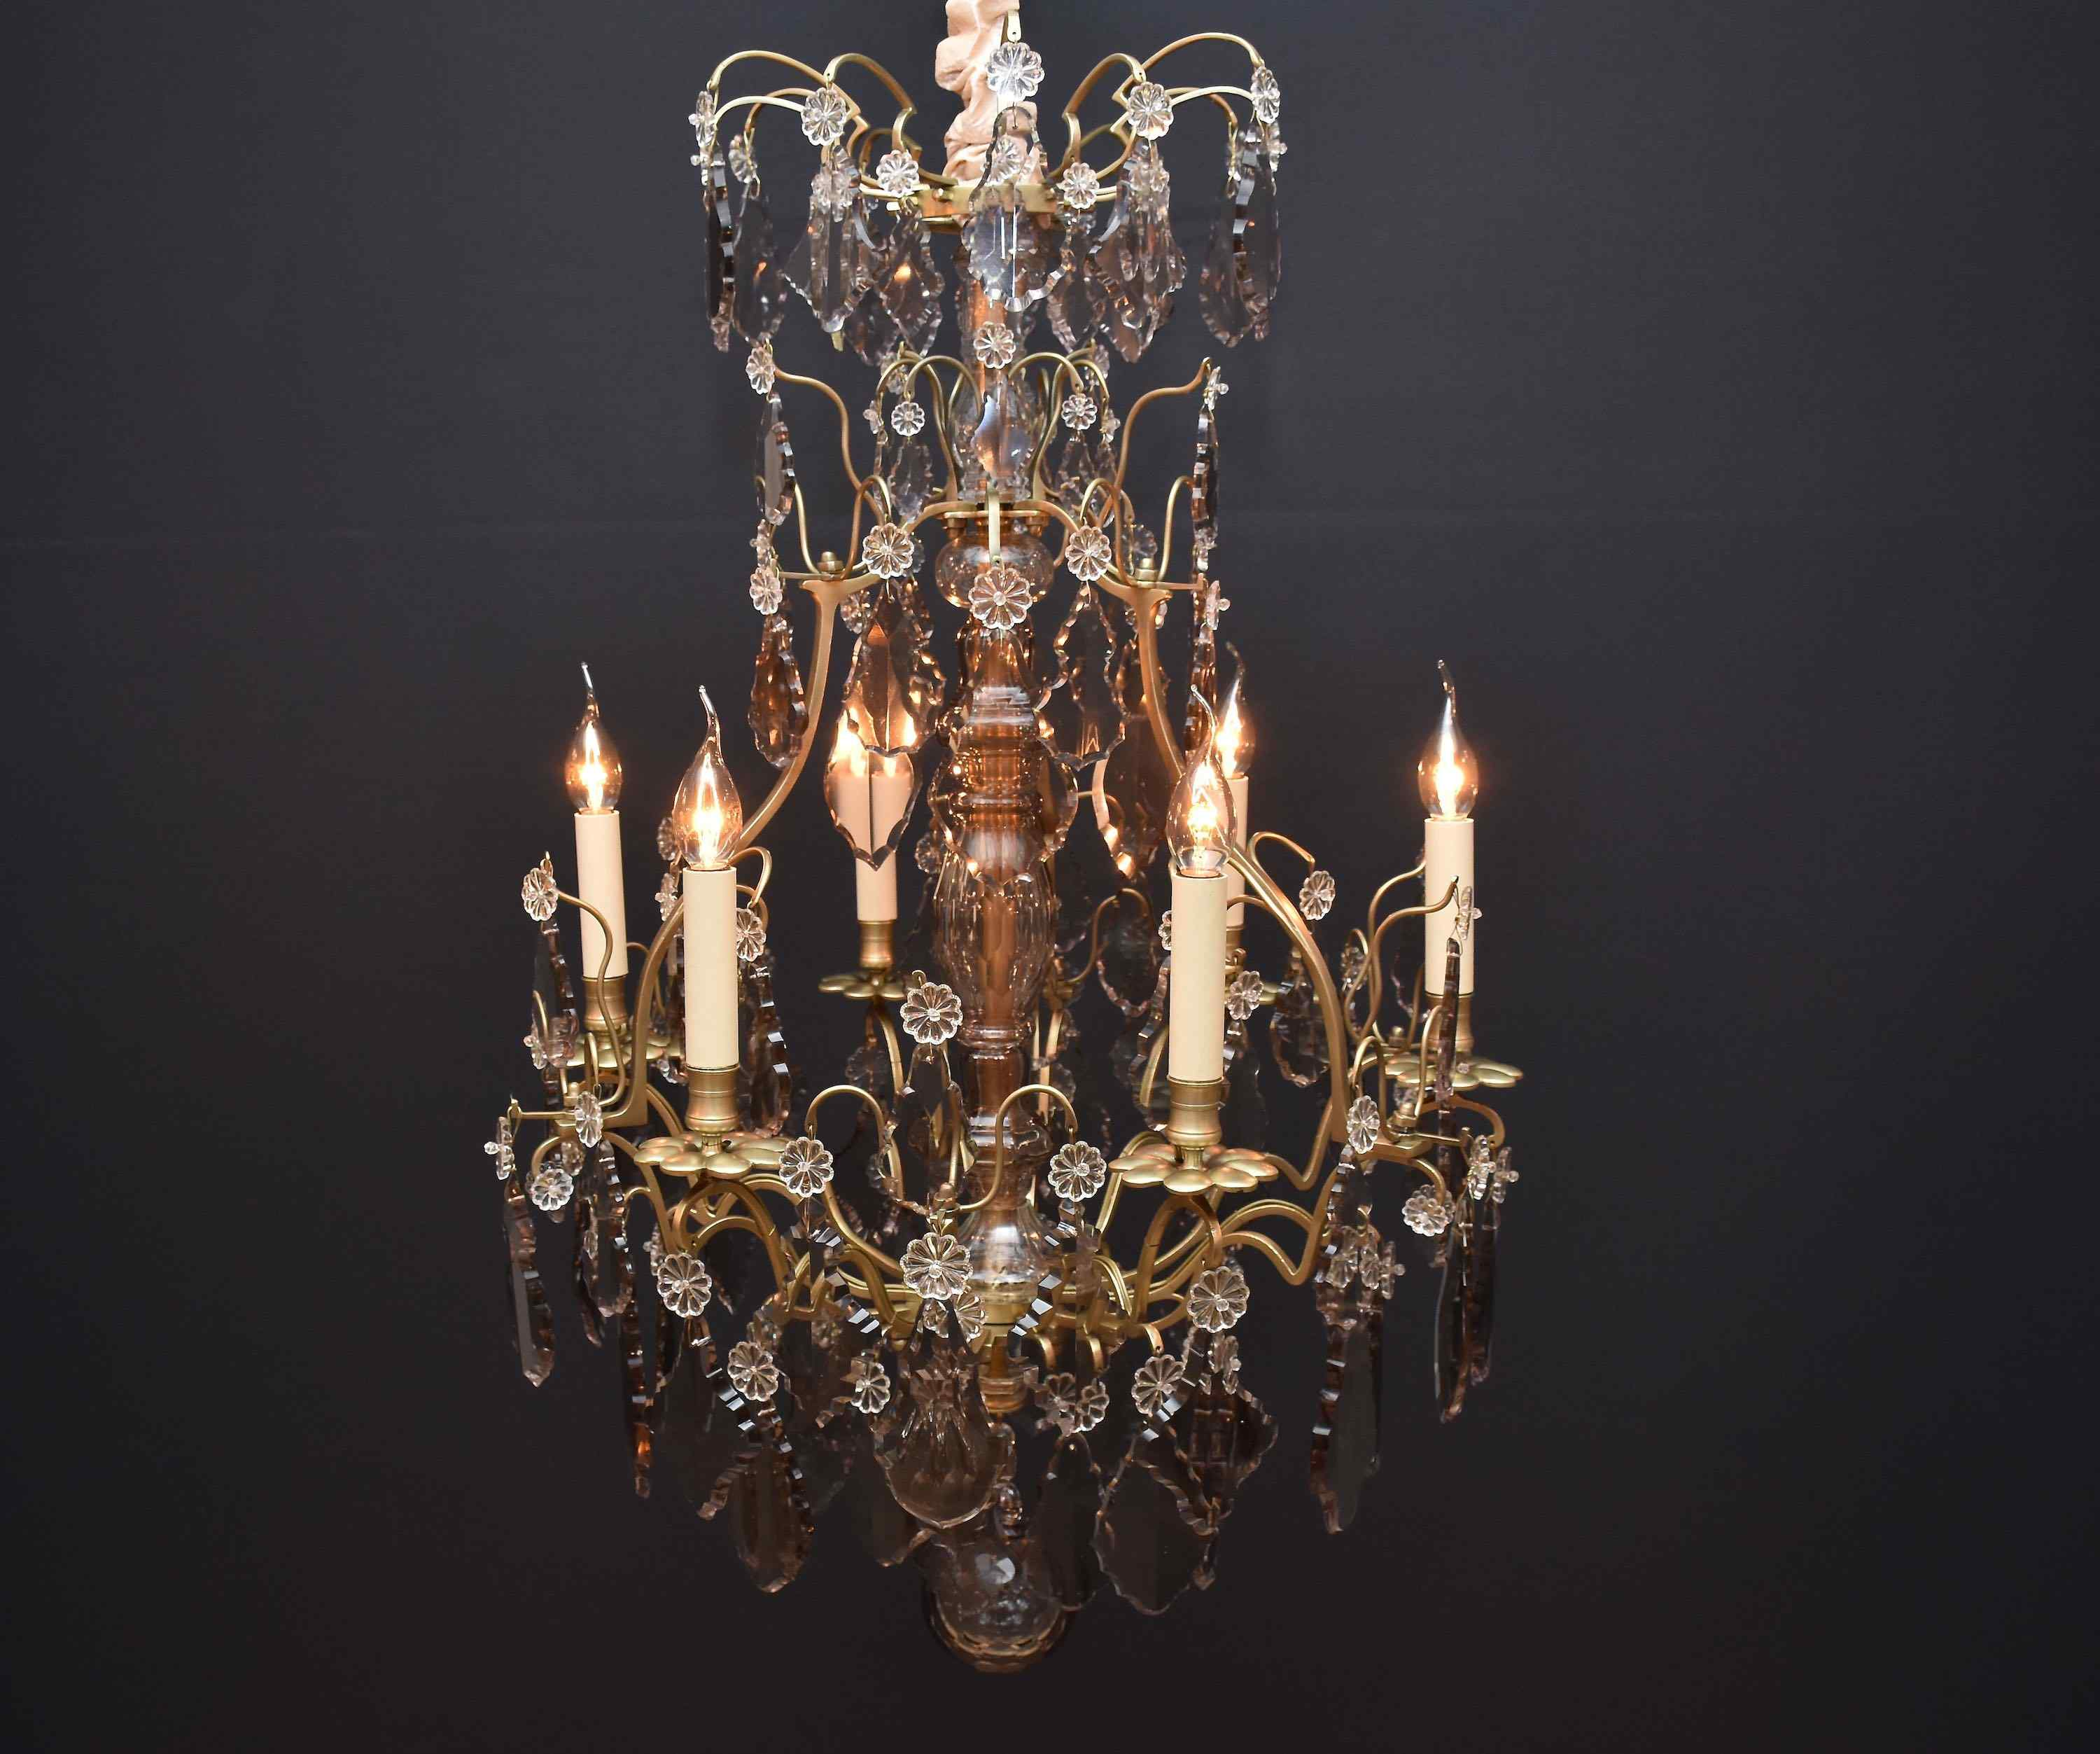 19th century French chandelier in the style of Louis XV